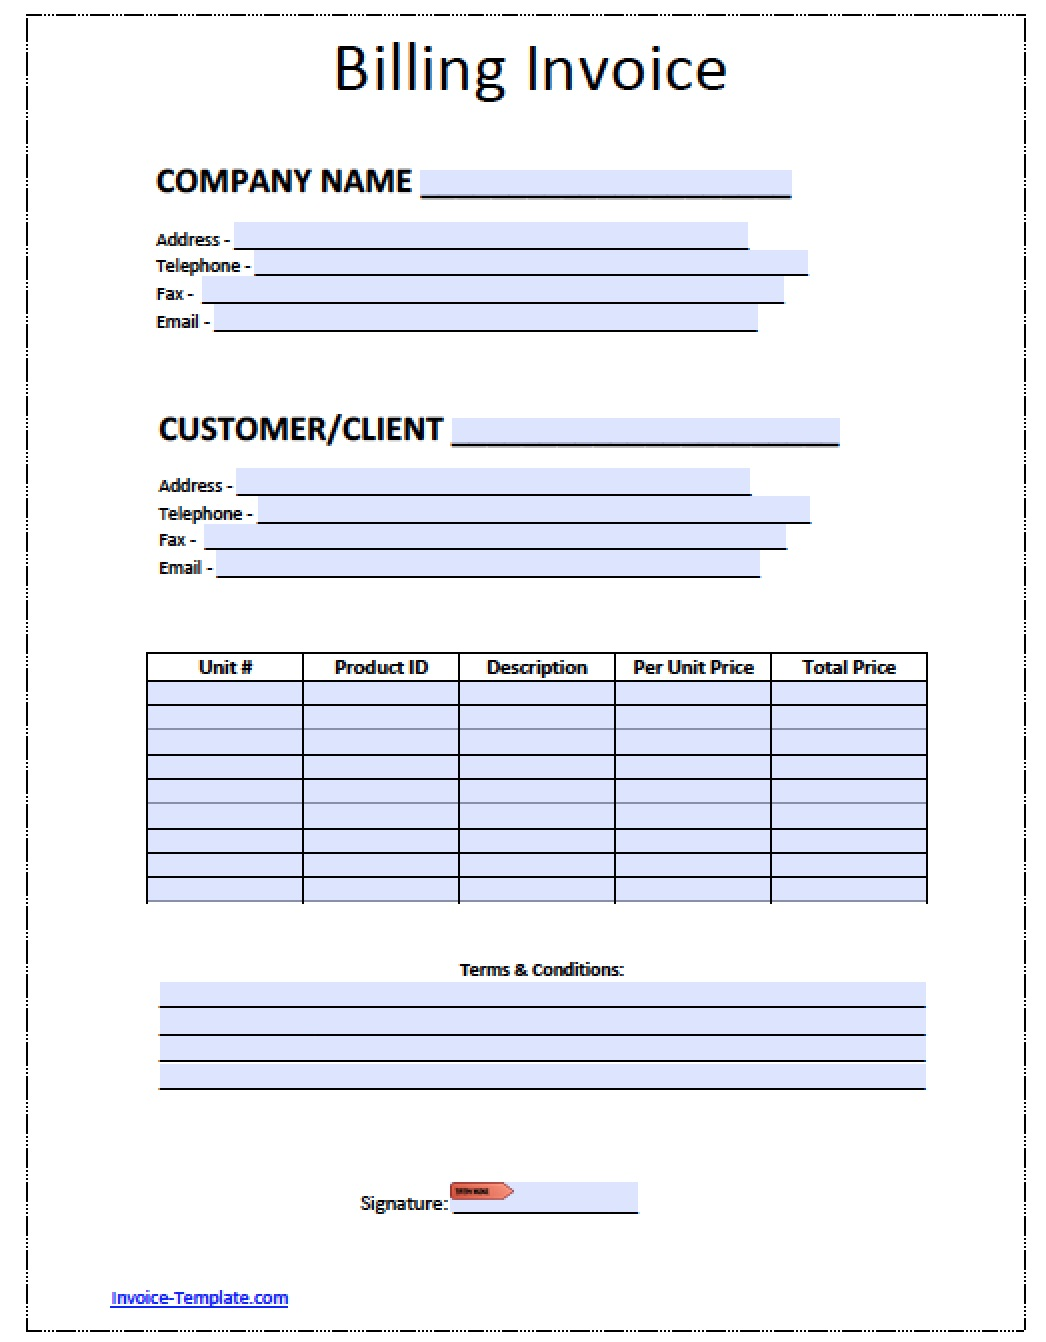 Carsforlessus  Unusual Billing Invoice Invoices Faq U Cloudflare Support Billing  With Gorgeous Free Billing Invoice Template  Excel  Pdf  Word Doc  Billing With Astounding Free Invoices And Estimates Also Invoice Template Pdf Free Download In Addition Invoice Quotes And Gross Invoice As Well As  Ford Escape Invoice Price Additionally Invoice Address Amazon From Happytomco With Carsforlessus  Gorgeous Billing Invoice Invoices Faq U Cloudflare Support Billing  With Astounding Free Billing Invoice Template  Excel  Pdf  Word Doc  Billing And Unusual Free Invoices And Estimates Also Invoice Template Pdf Free Download In Addition Invoice Quotes From Happytomco